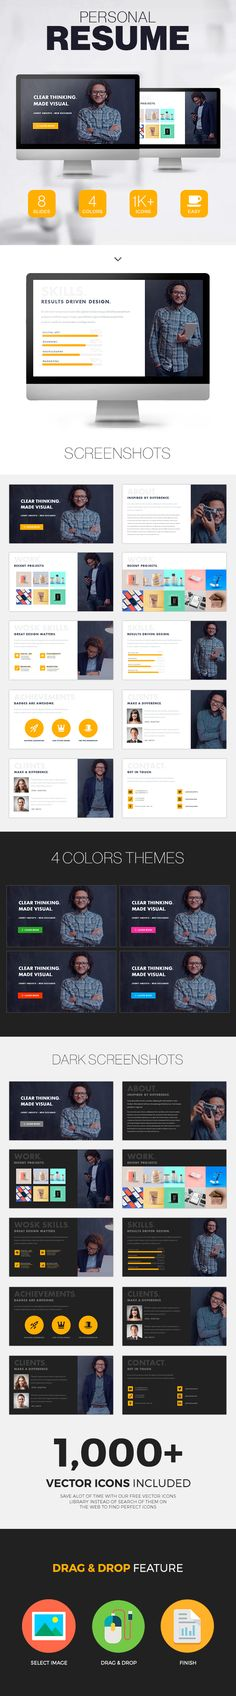 Imagine PowerPoint Template Powerpoint presentation templates - resume powerpoint template